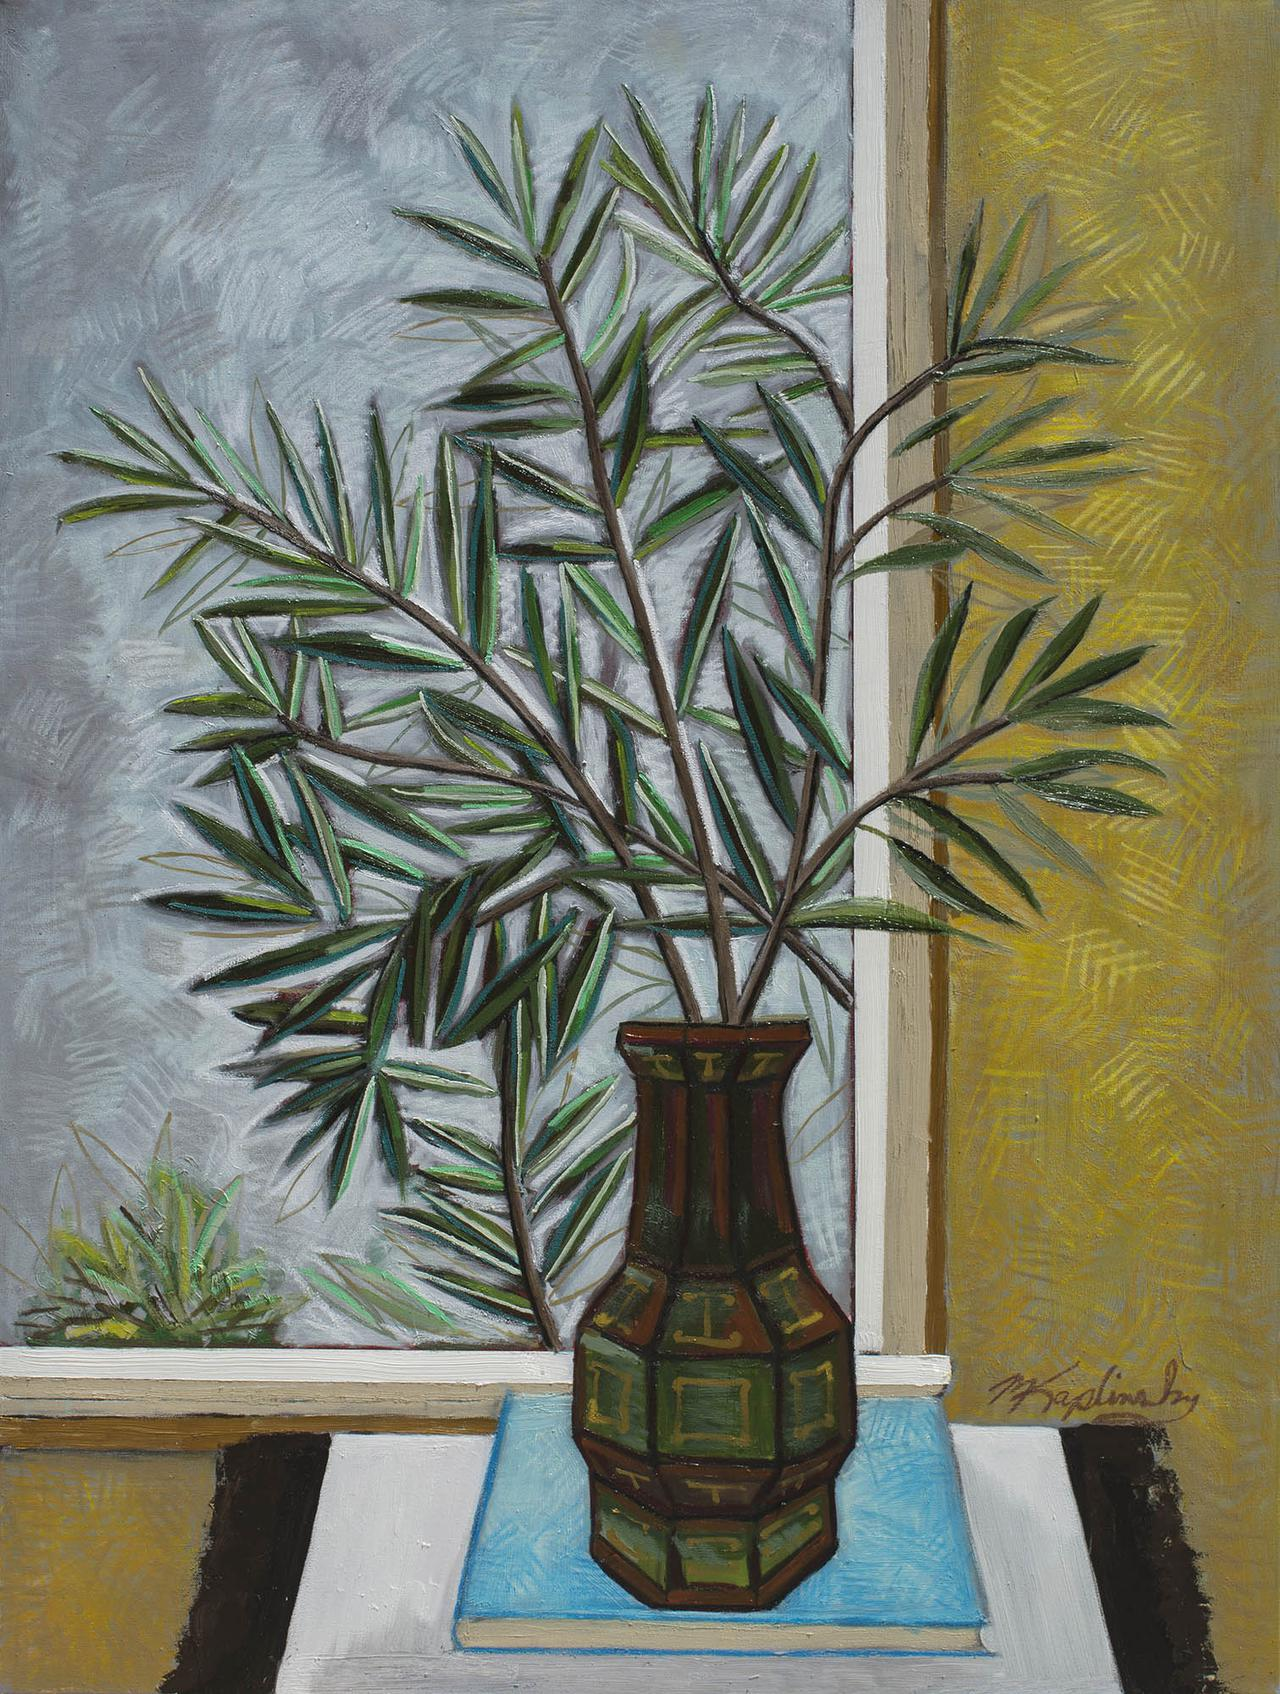 portfolio/Antique Vase with Side Yard Oleander - 36x48 oil on canvas by Matt Kaplinsky.jpg